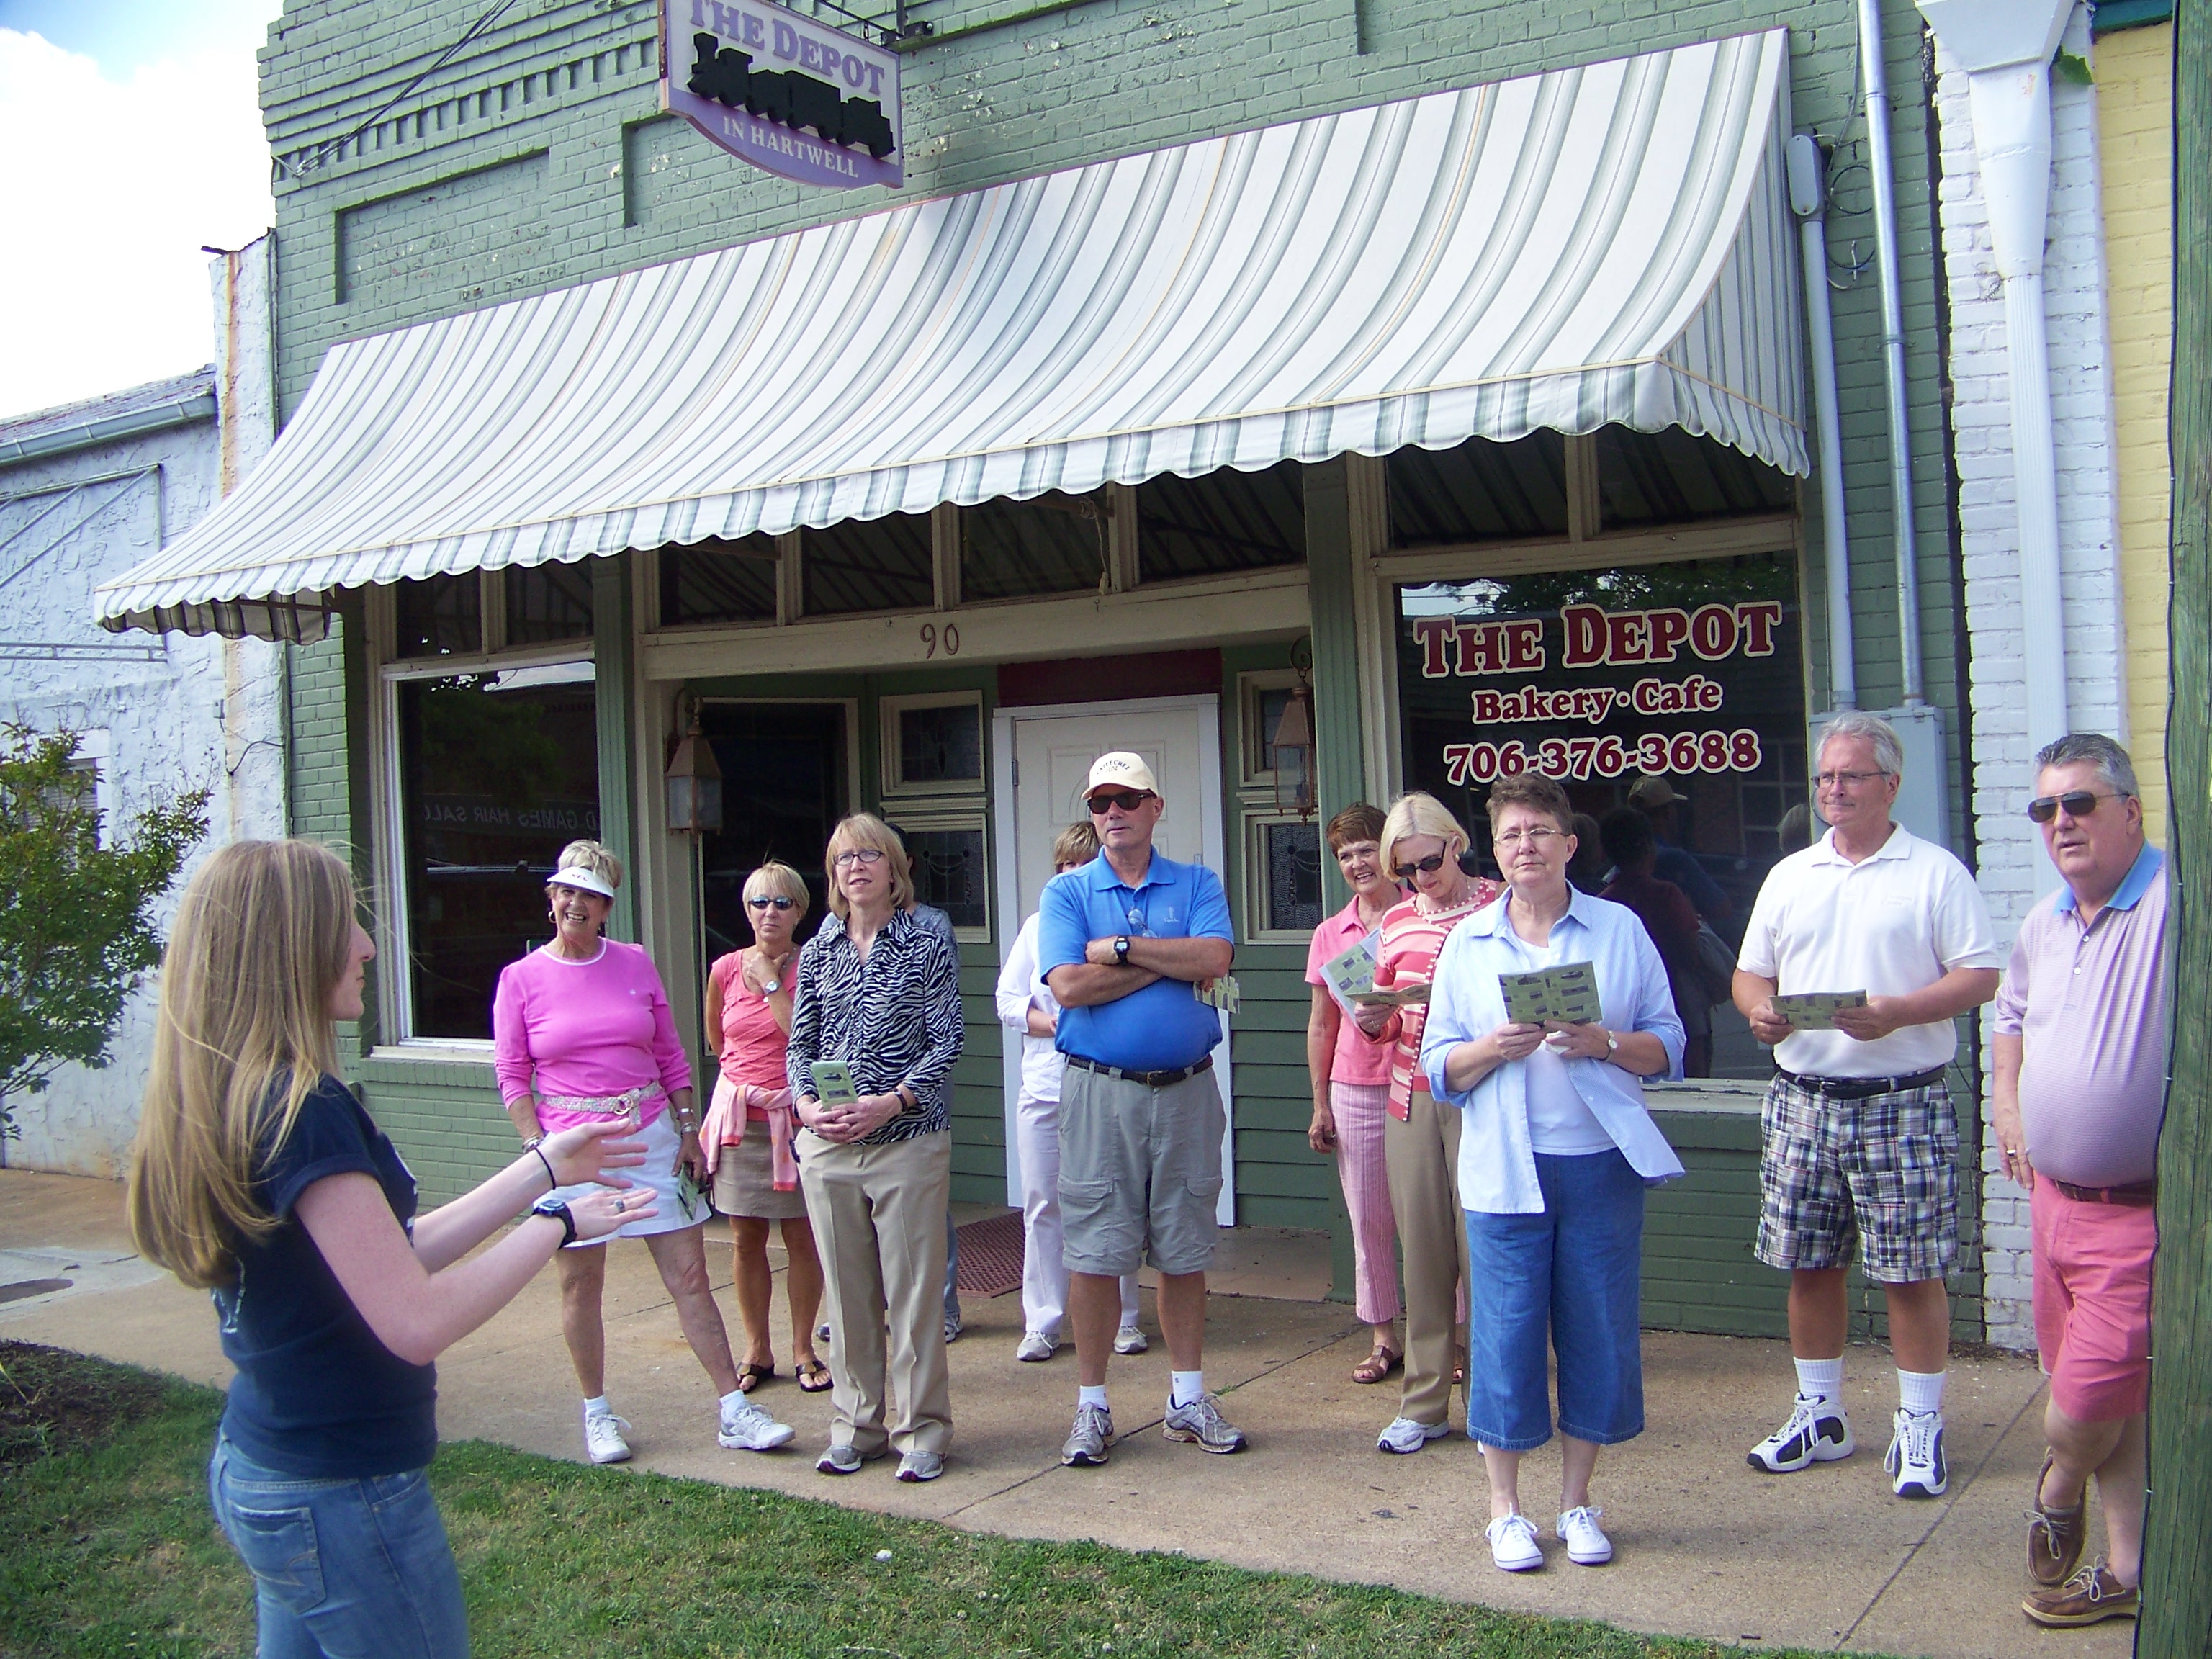 A group on a downtown walking tour in Hartwell, Georgia